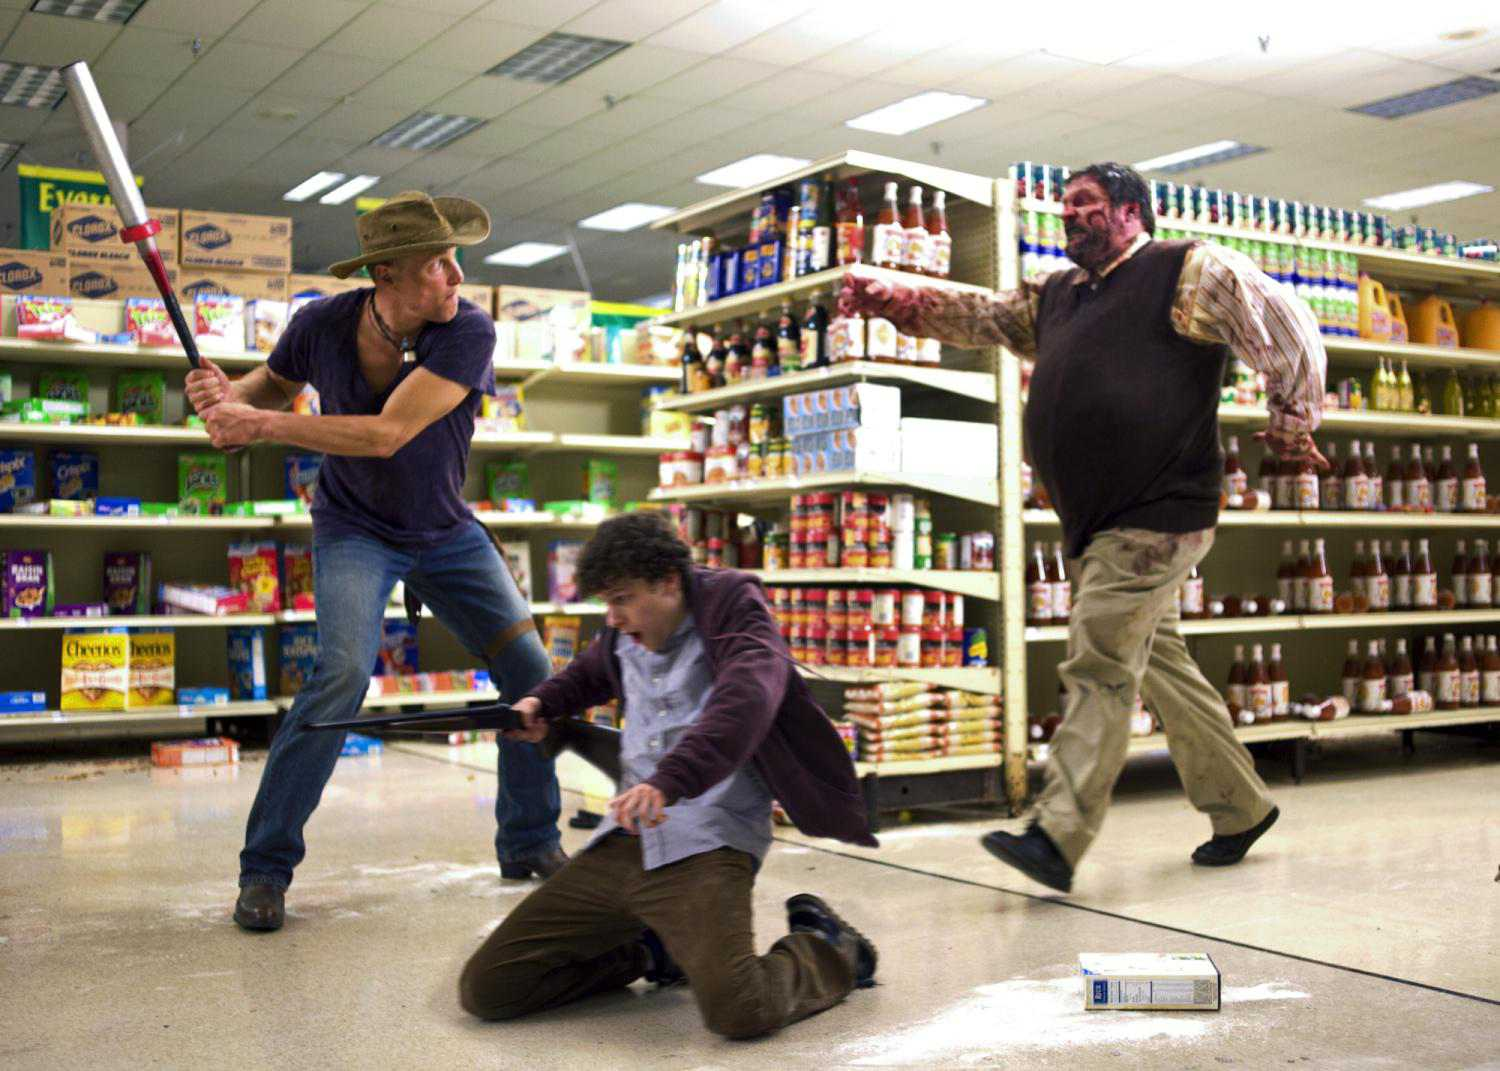 All Comedy Movies In 2009 best comedy movies of 2009